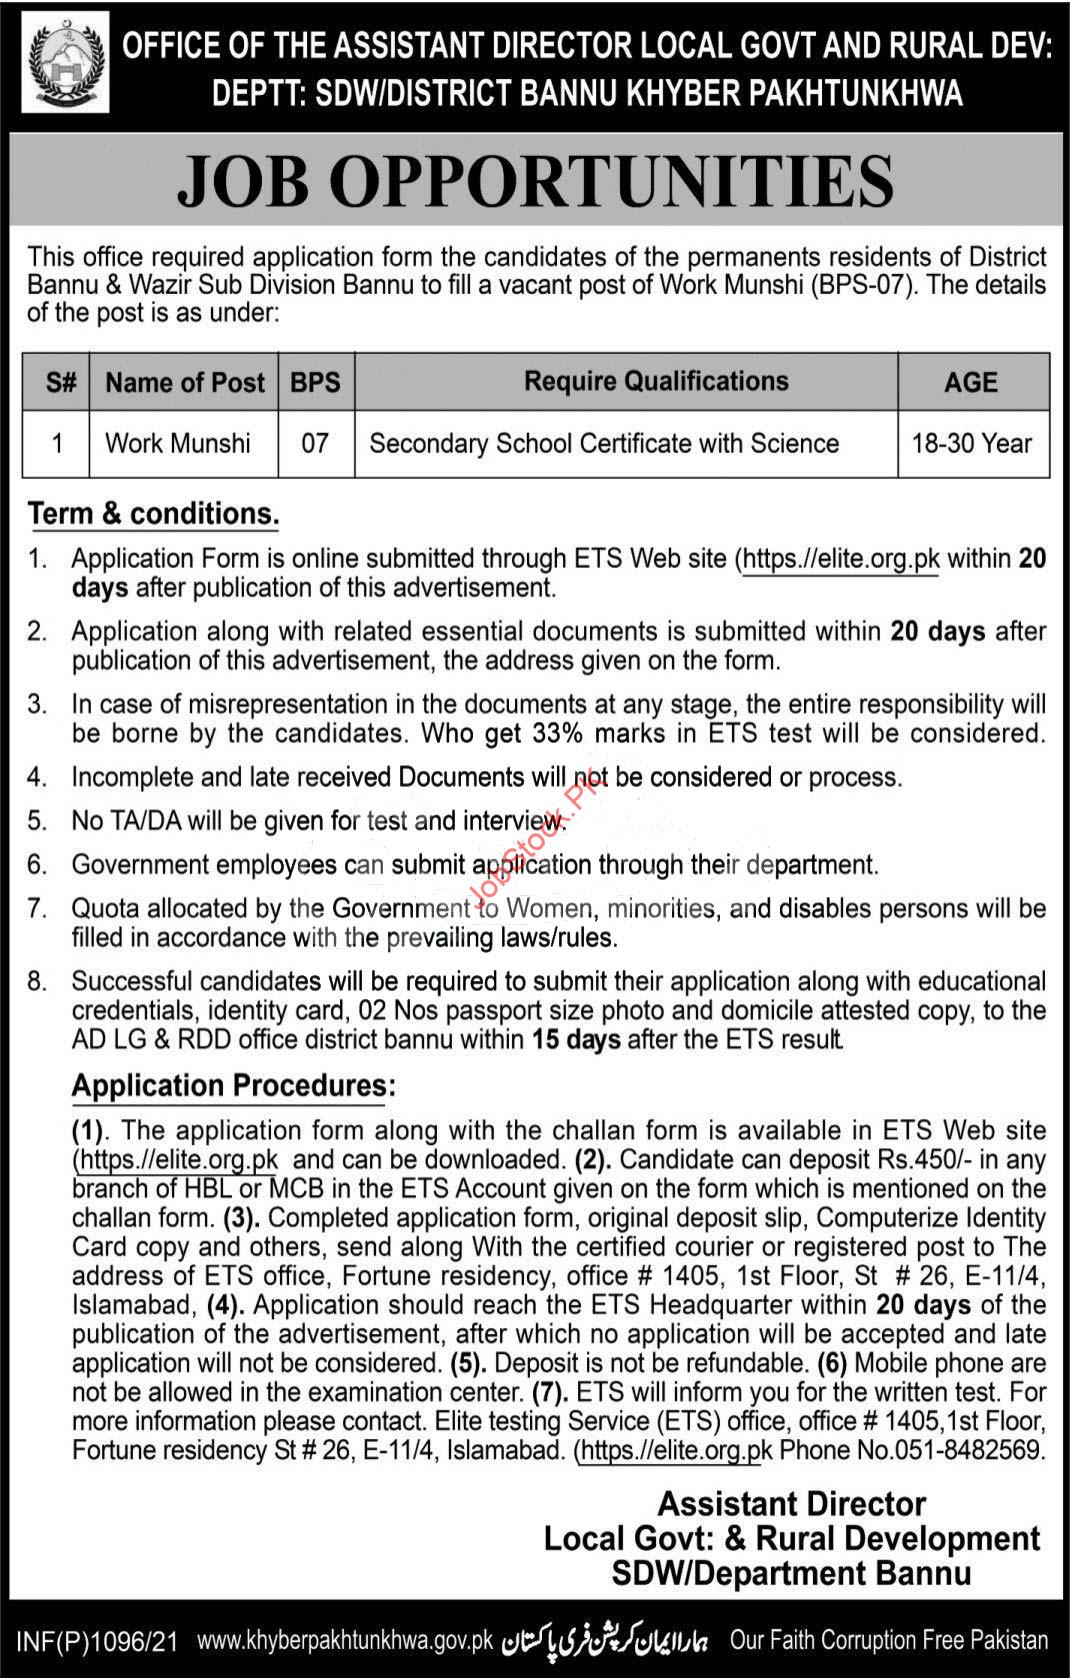 Local Government And Rural Development Department Bannu Jobs 2021 March Latest